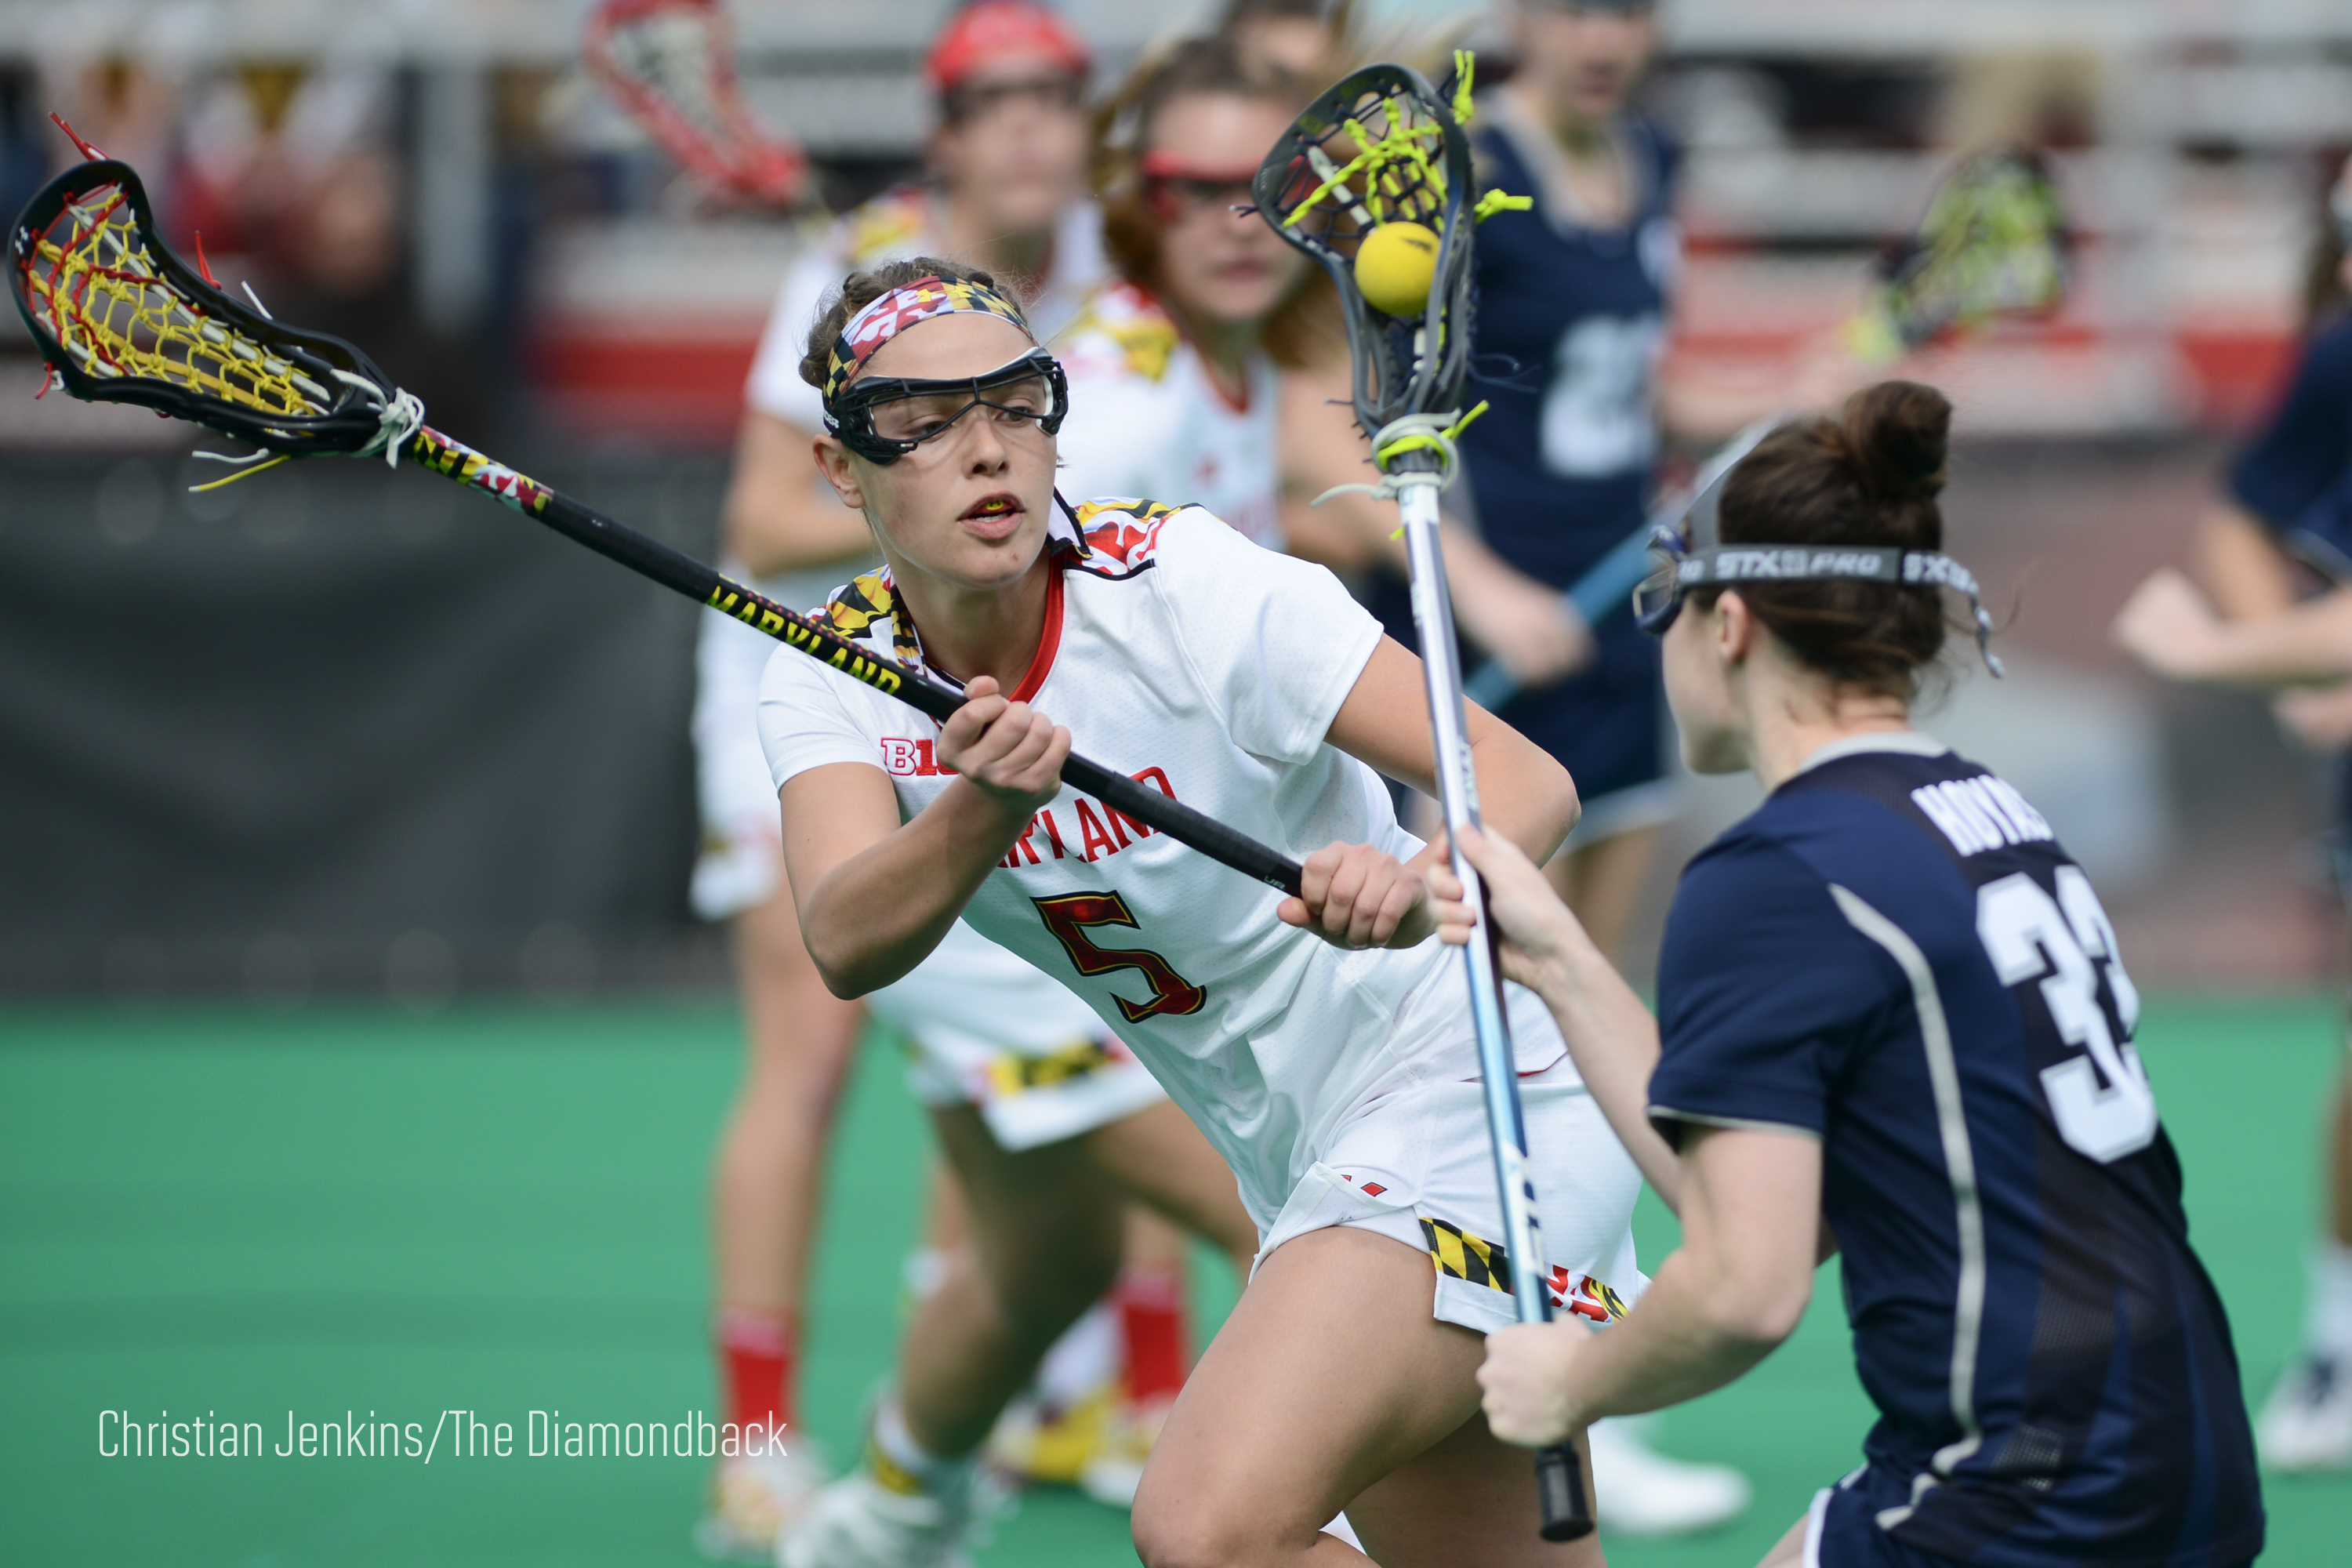 Maryland women's lacrosse hopes to ride team effort to win ...